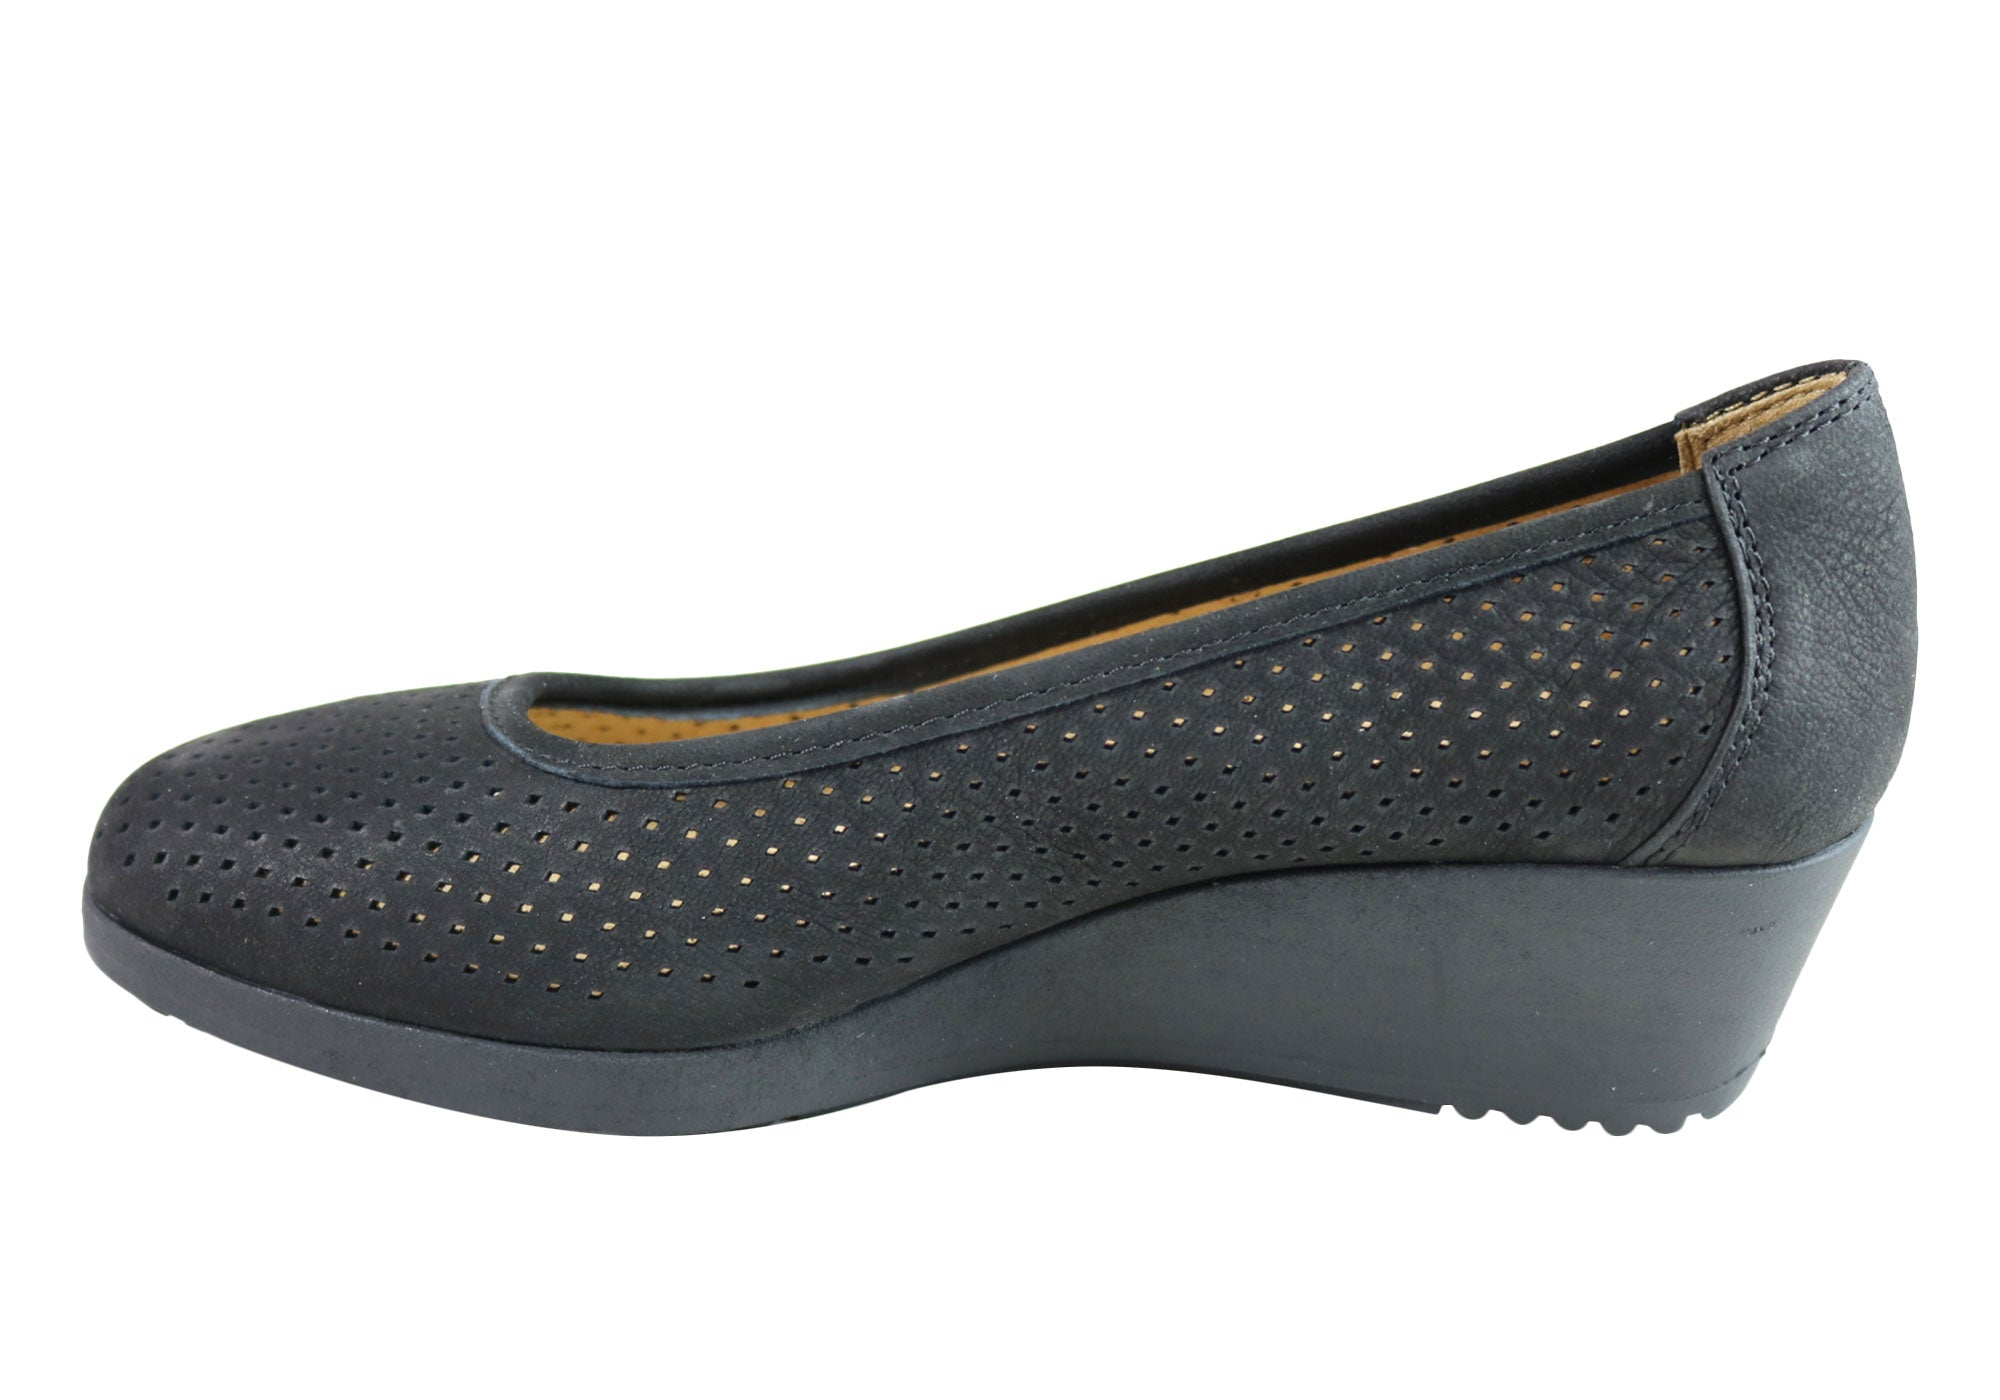 Naturalizer Womens Betina 2 Comfort Cushioned Low Wedge Pumps Shoes SSA